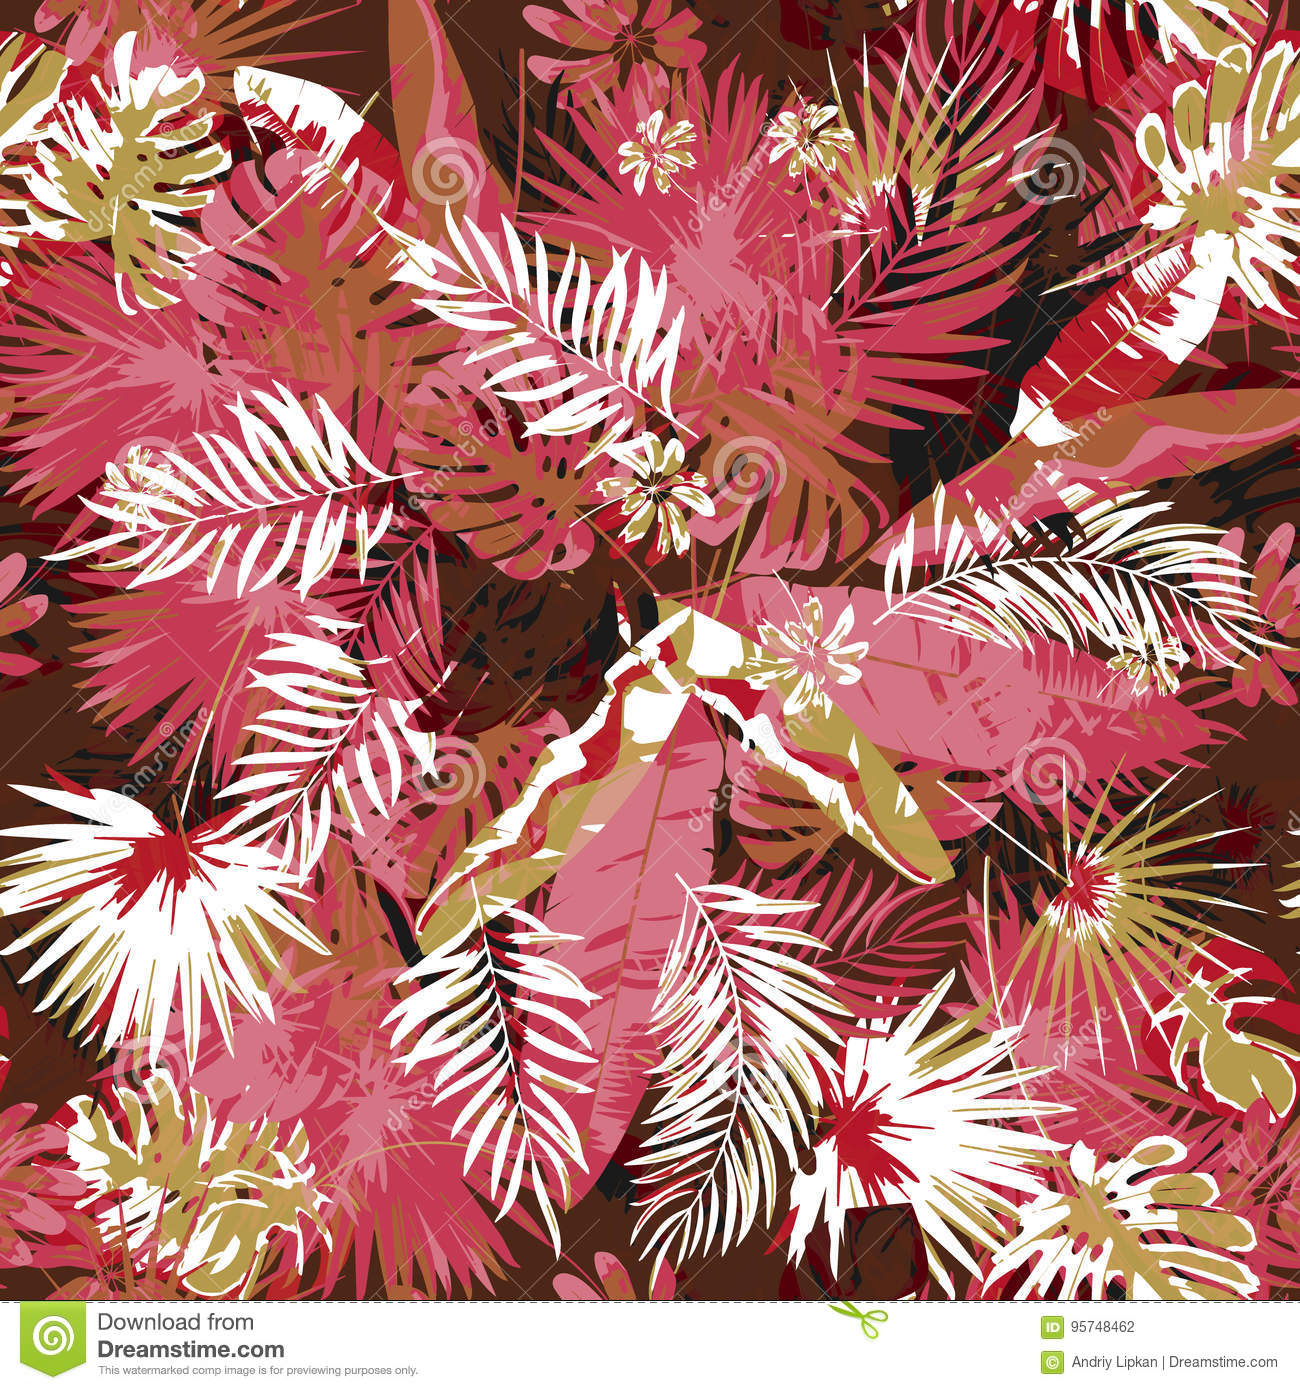 Tropical floral seamless palm trees pattern a camouflage background trendy colors. Graphic painting exotic plants and